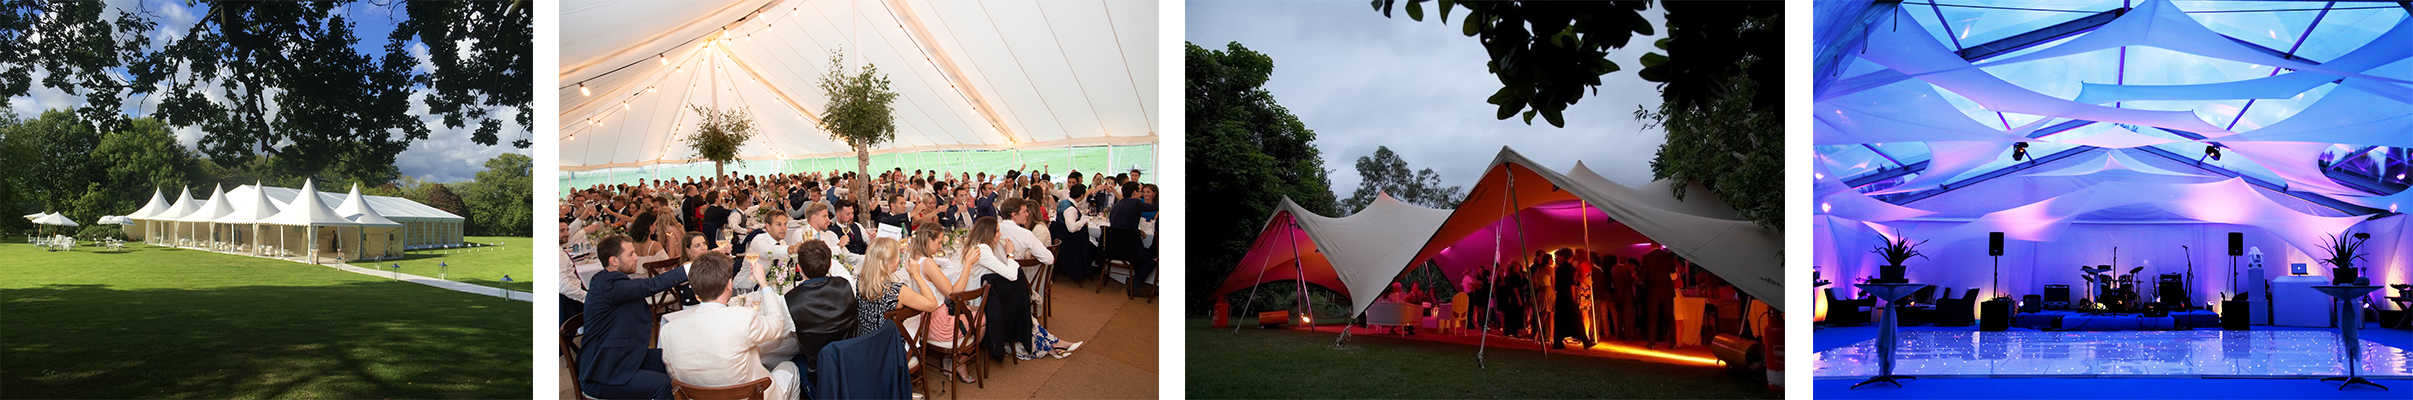 Marquee wedding hire: Different types of marquees